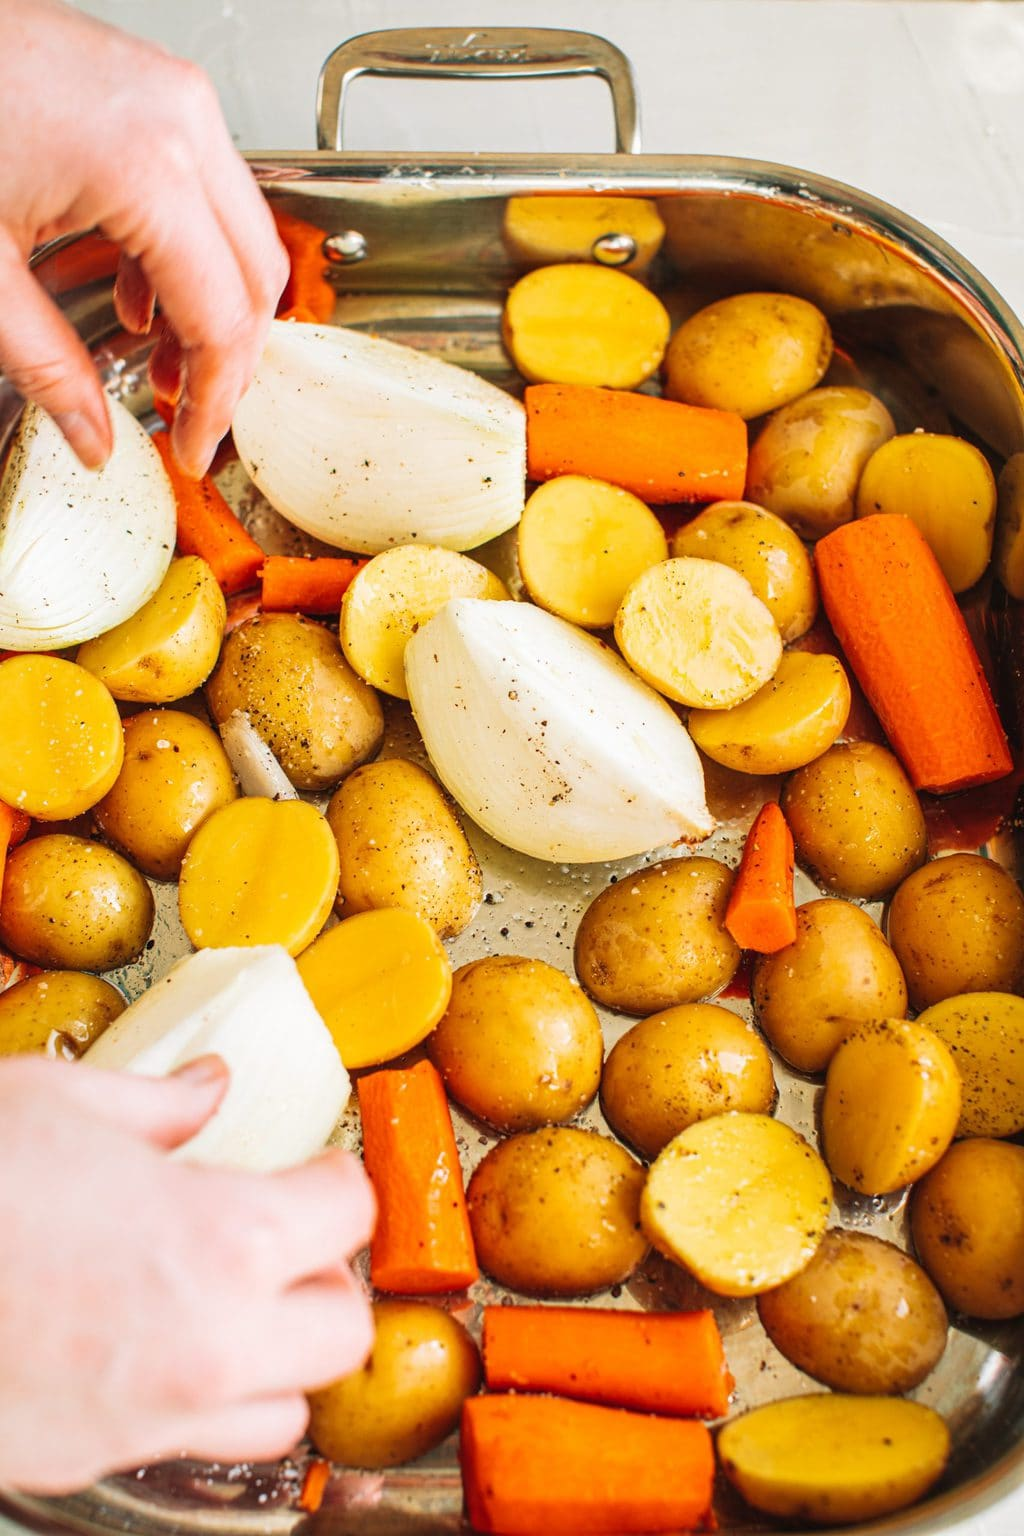 Small Yukon potatoes, chopped carrots, and quartered onions arranged in a roasting dish